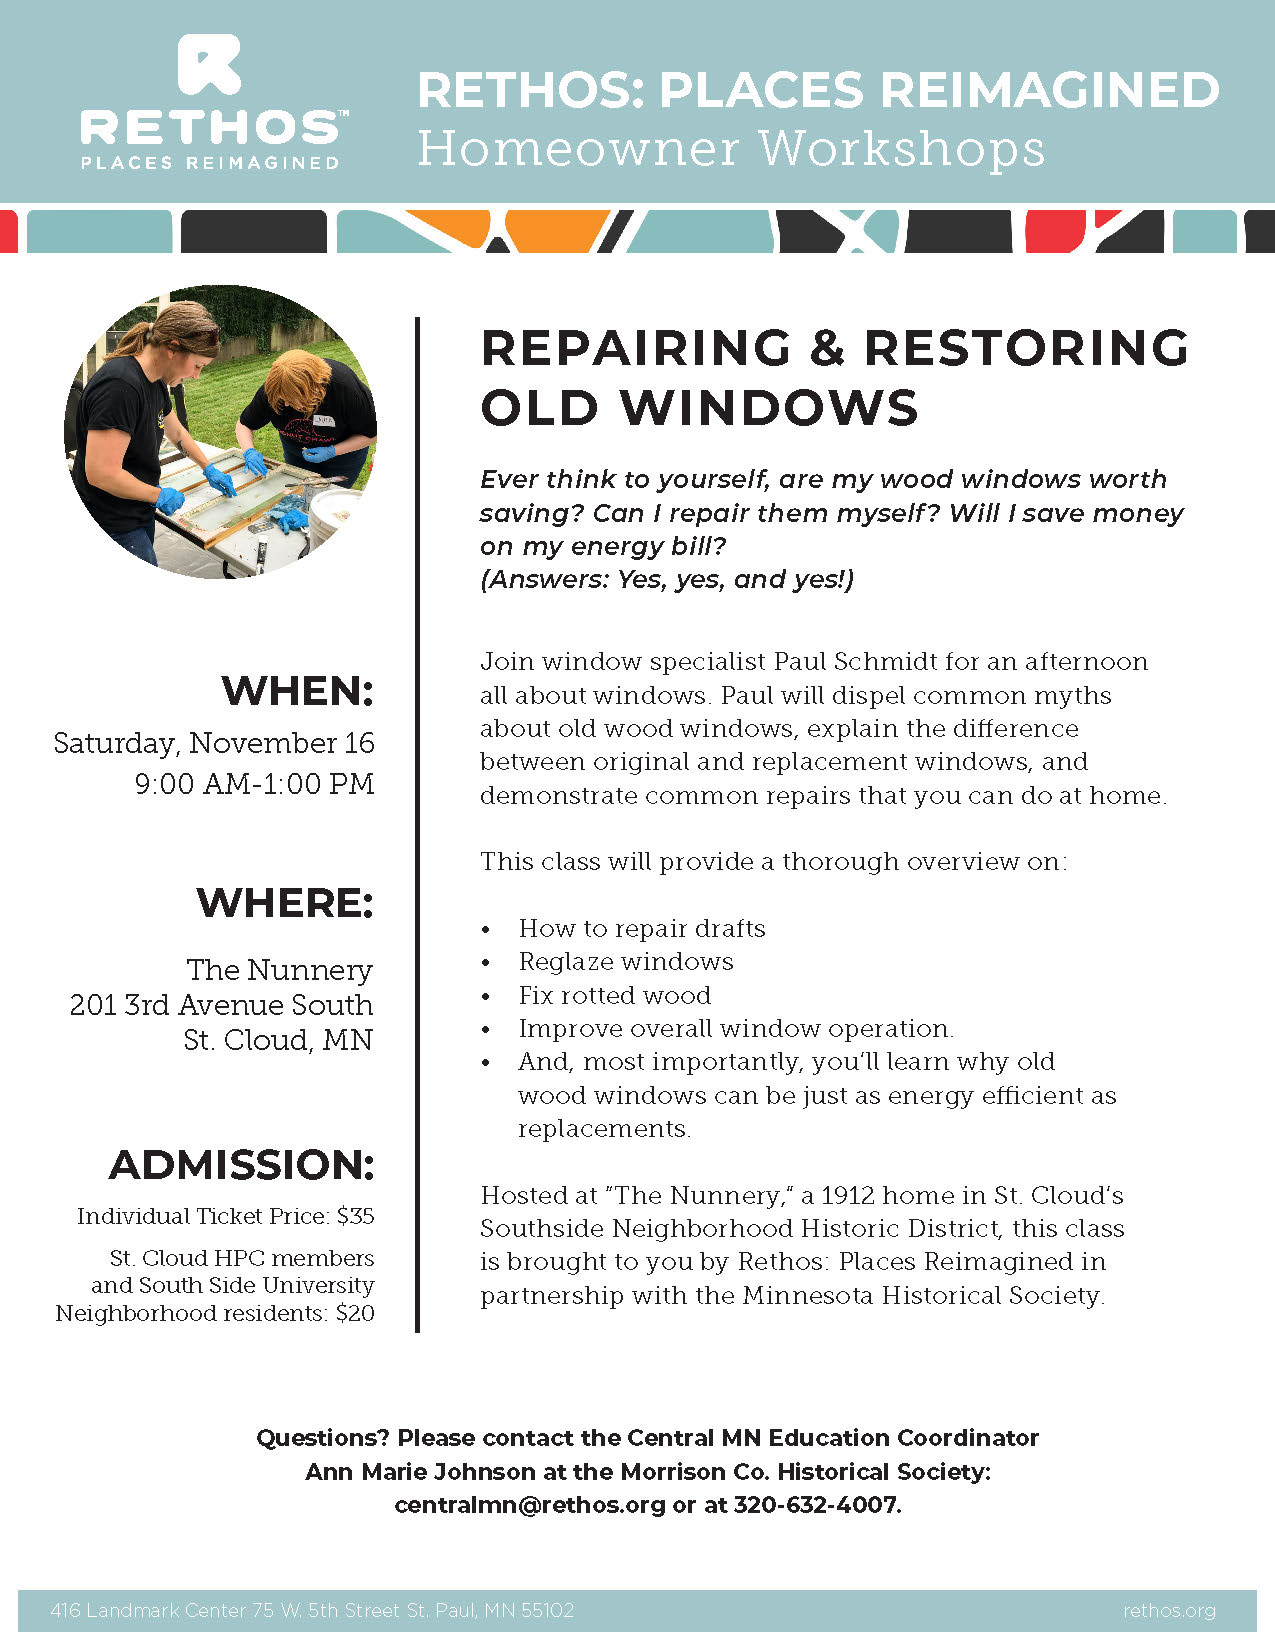 Flier for Repairing Old Windows class, November 16, 2019